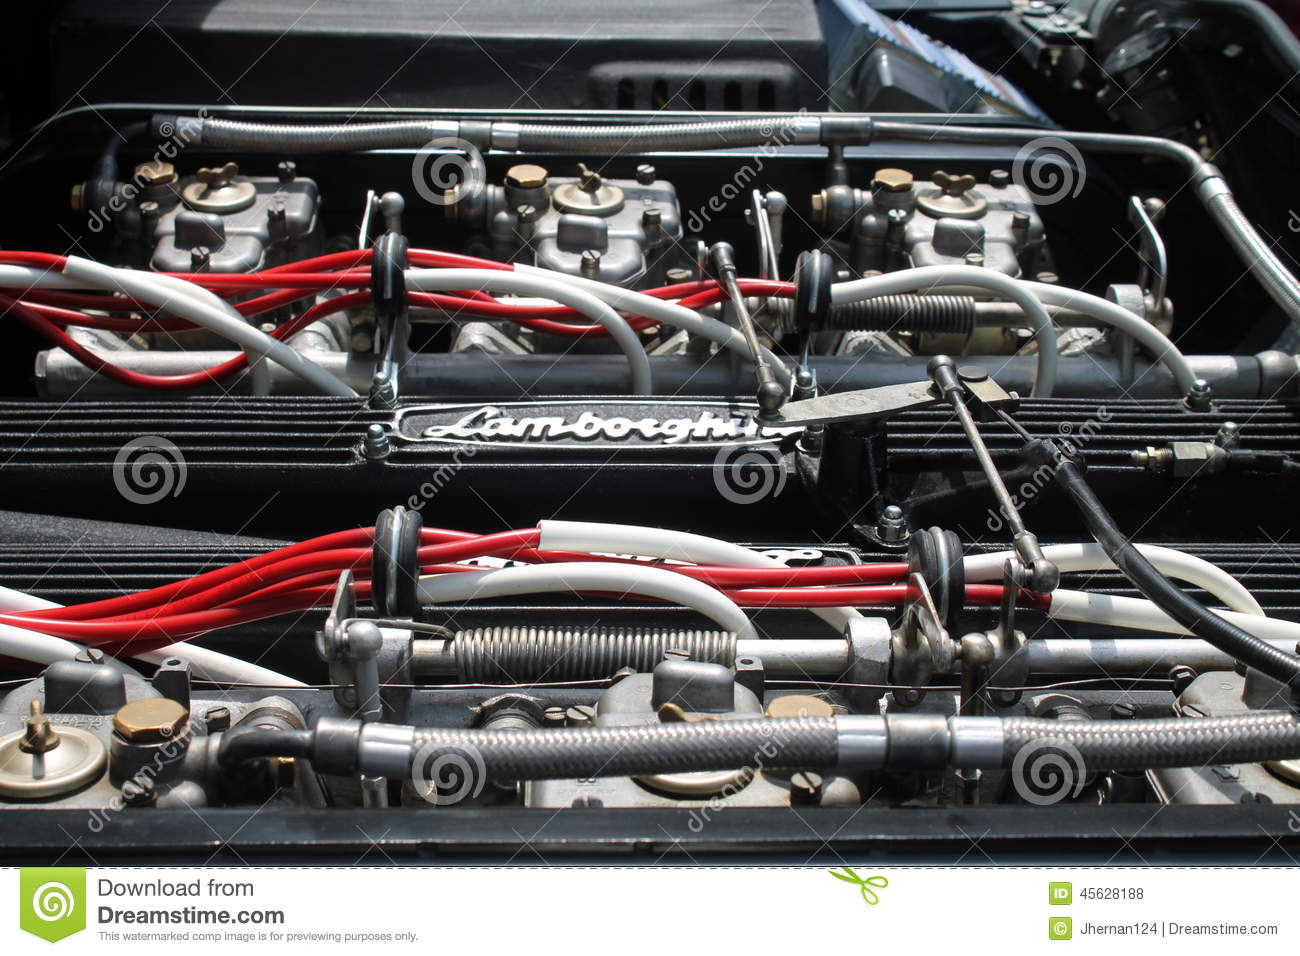 Vintage Sports Car Engine Bay View Editorial Stock Photo.